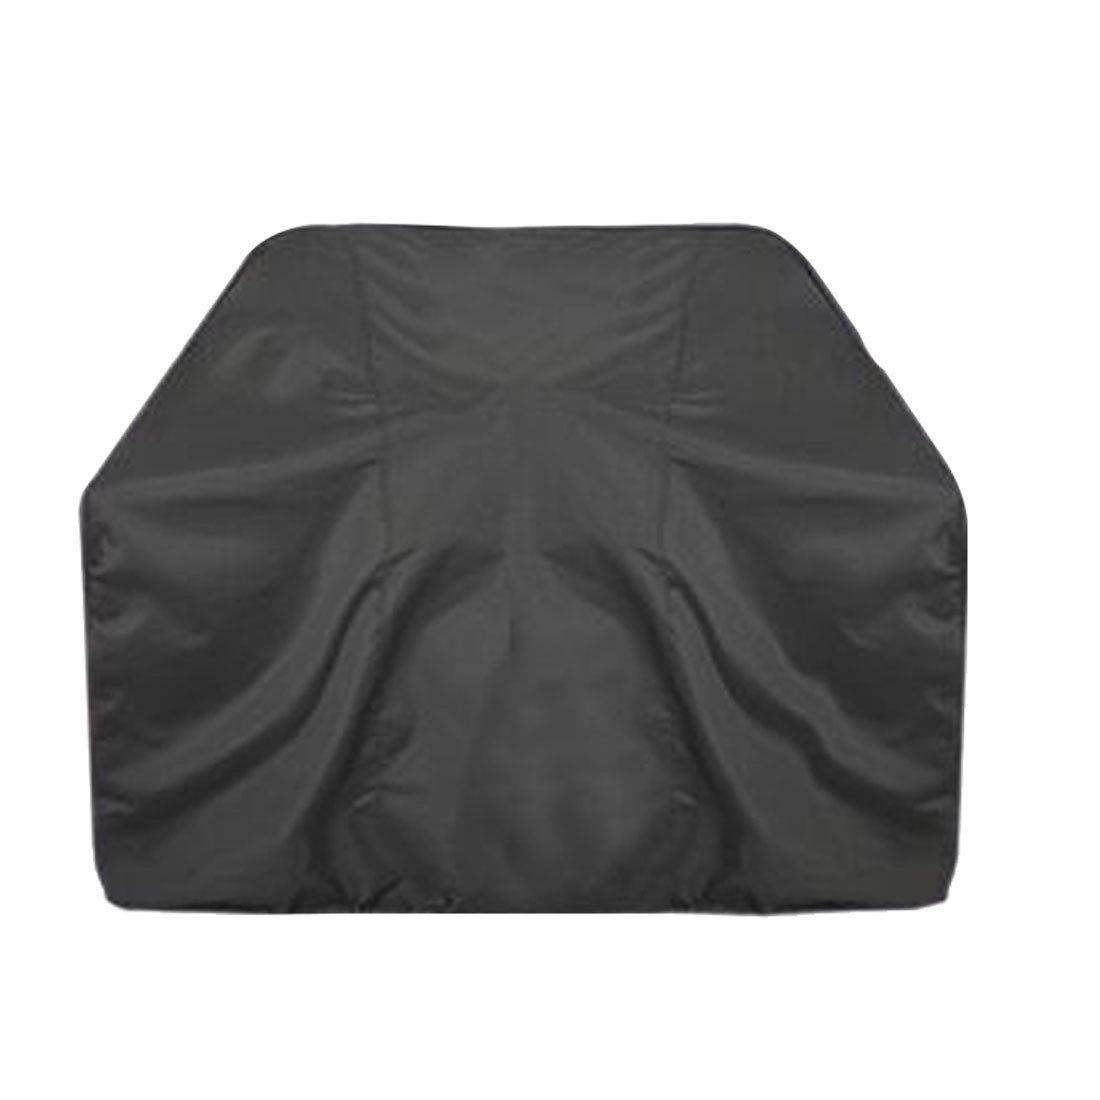 Grill Cover,BBQ Covers,Barbeque Grill and Griddle Covers,Outdoor Gas Grill Cover,Waterproof Dustproof Rain Snow Breathable Protector,Weather Resistant BBQ Covers,Double stitching,Black,KOKEO